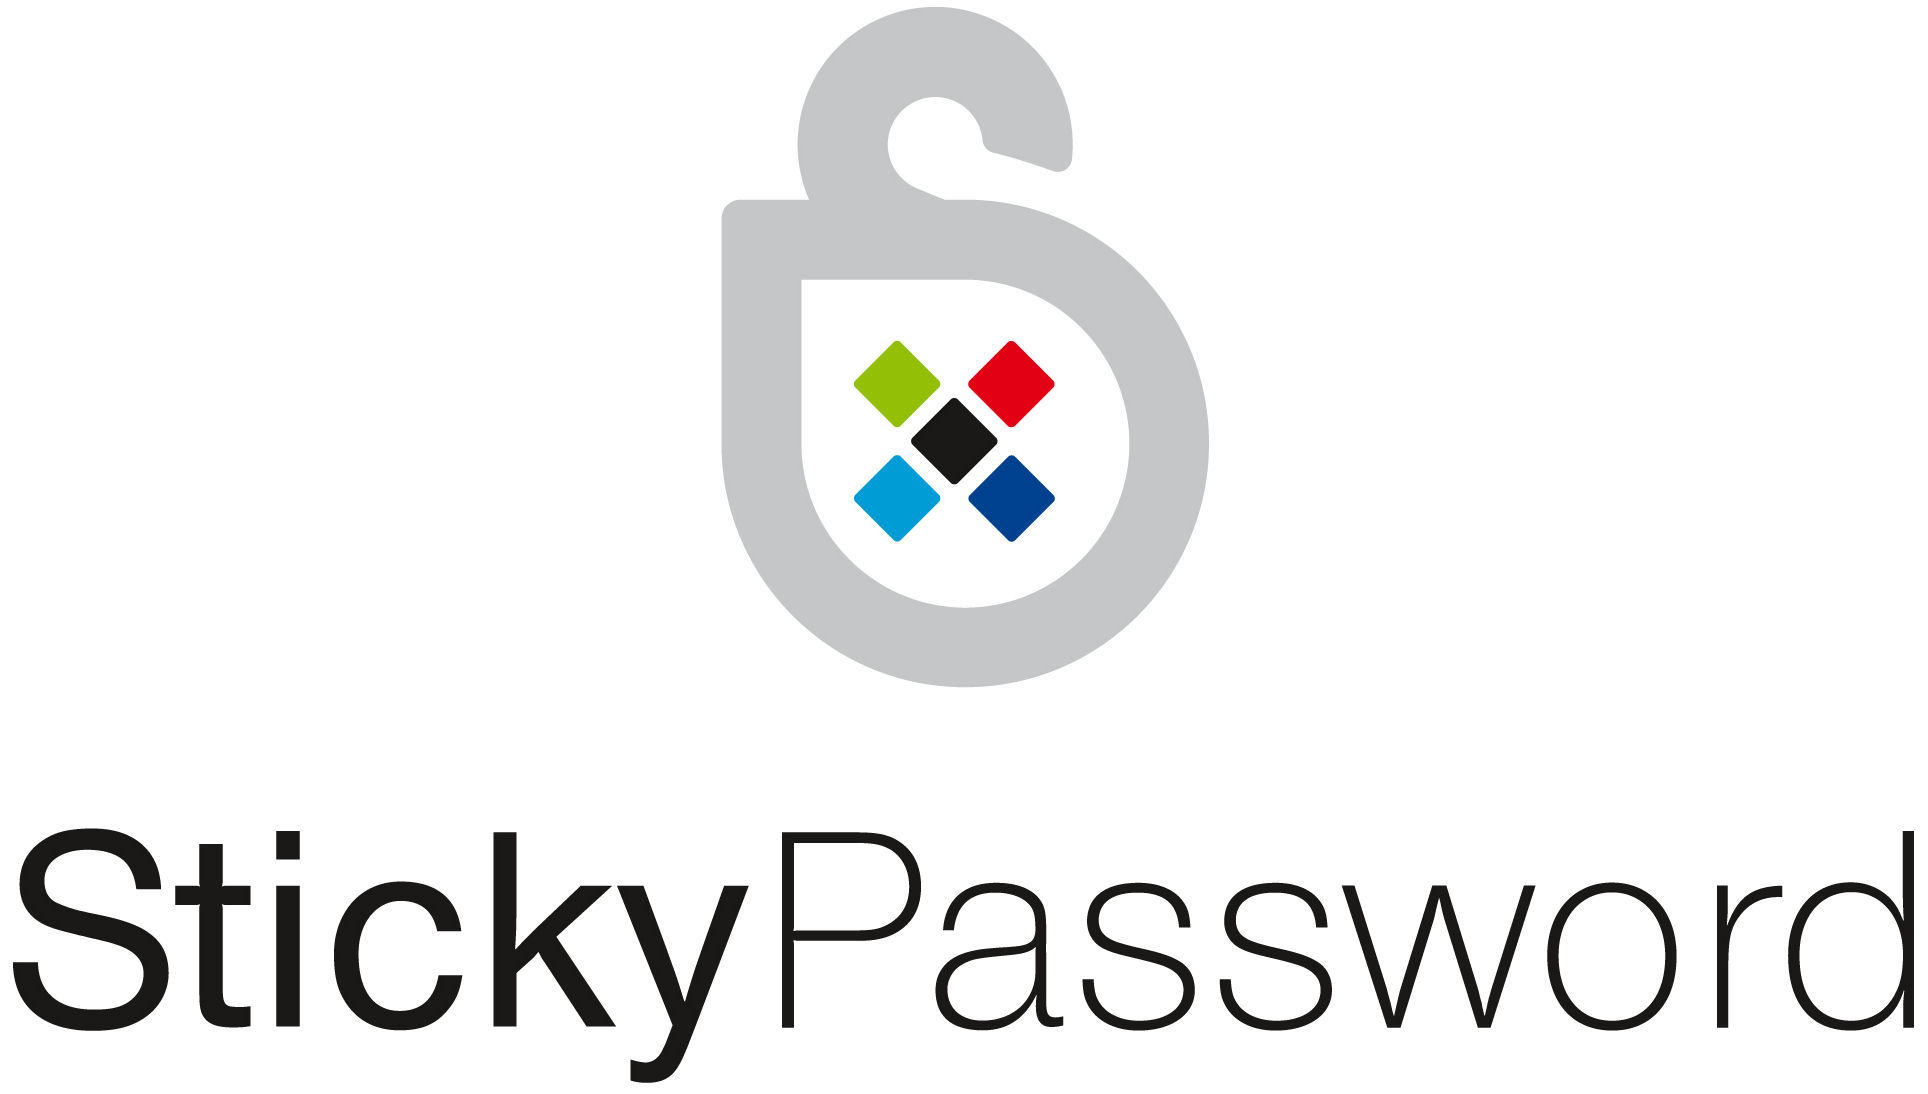 Sticky Password - Password Management Software : SaaSworthy.com